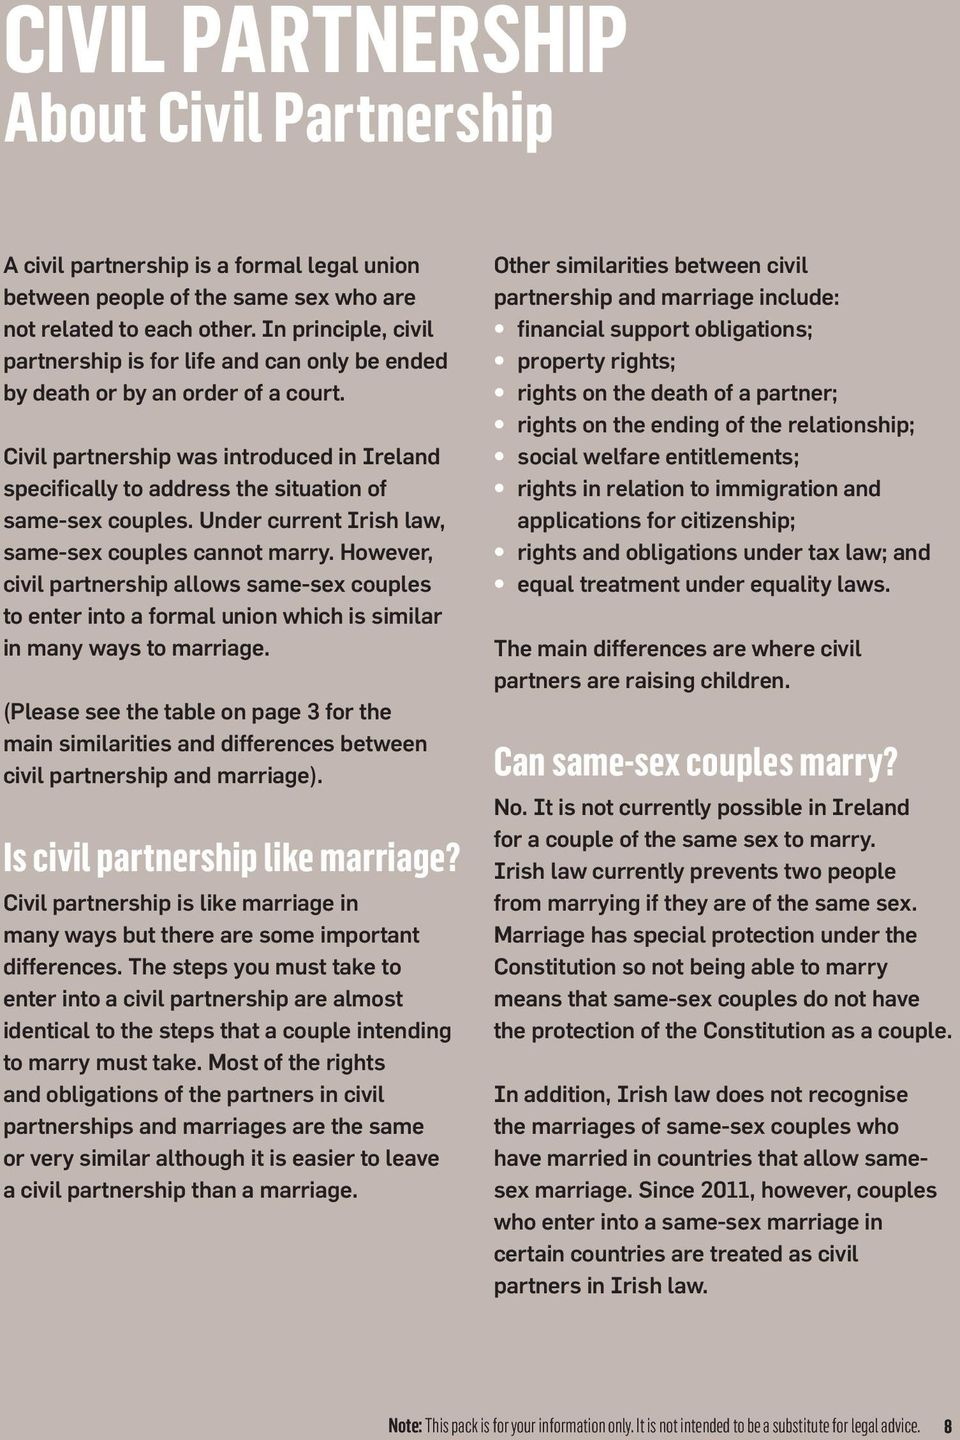 Civil partnership was introduced in Ireland specifically to address the situation of same-sex couples. Under current Irish law, same-sex couples cannot marry.